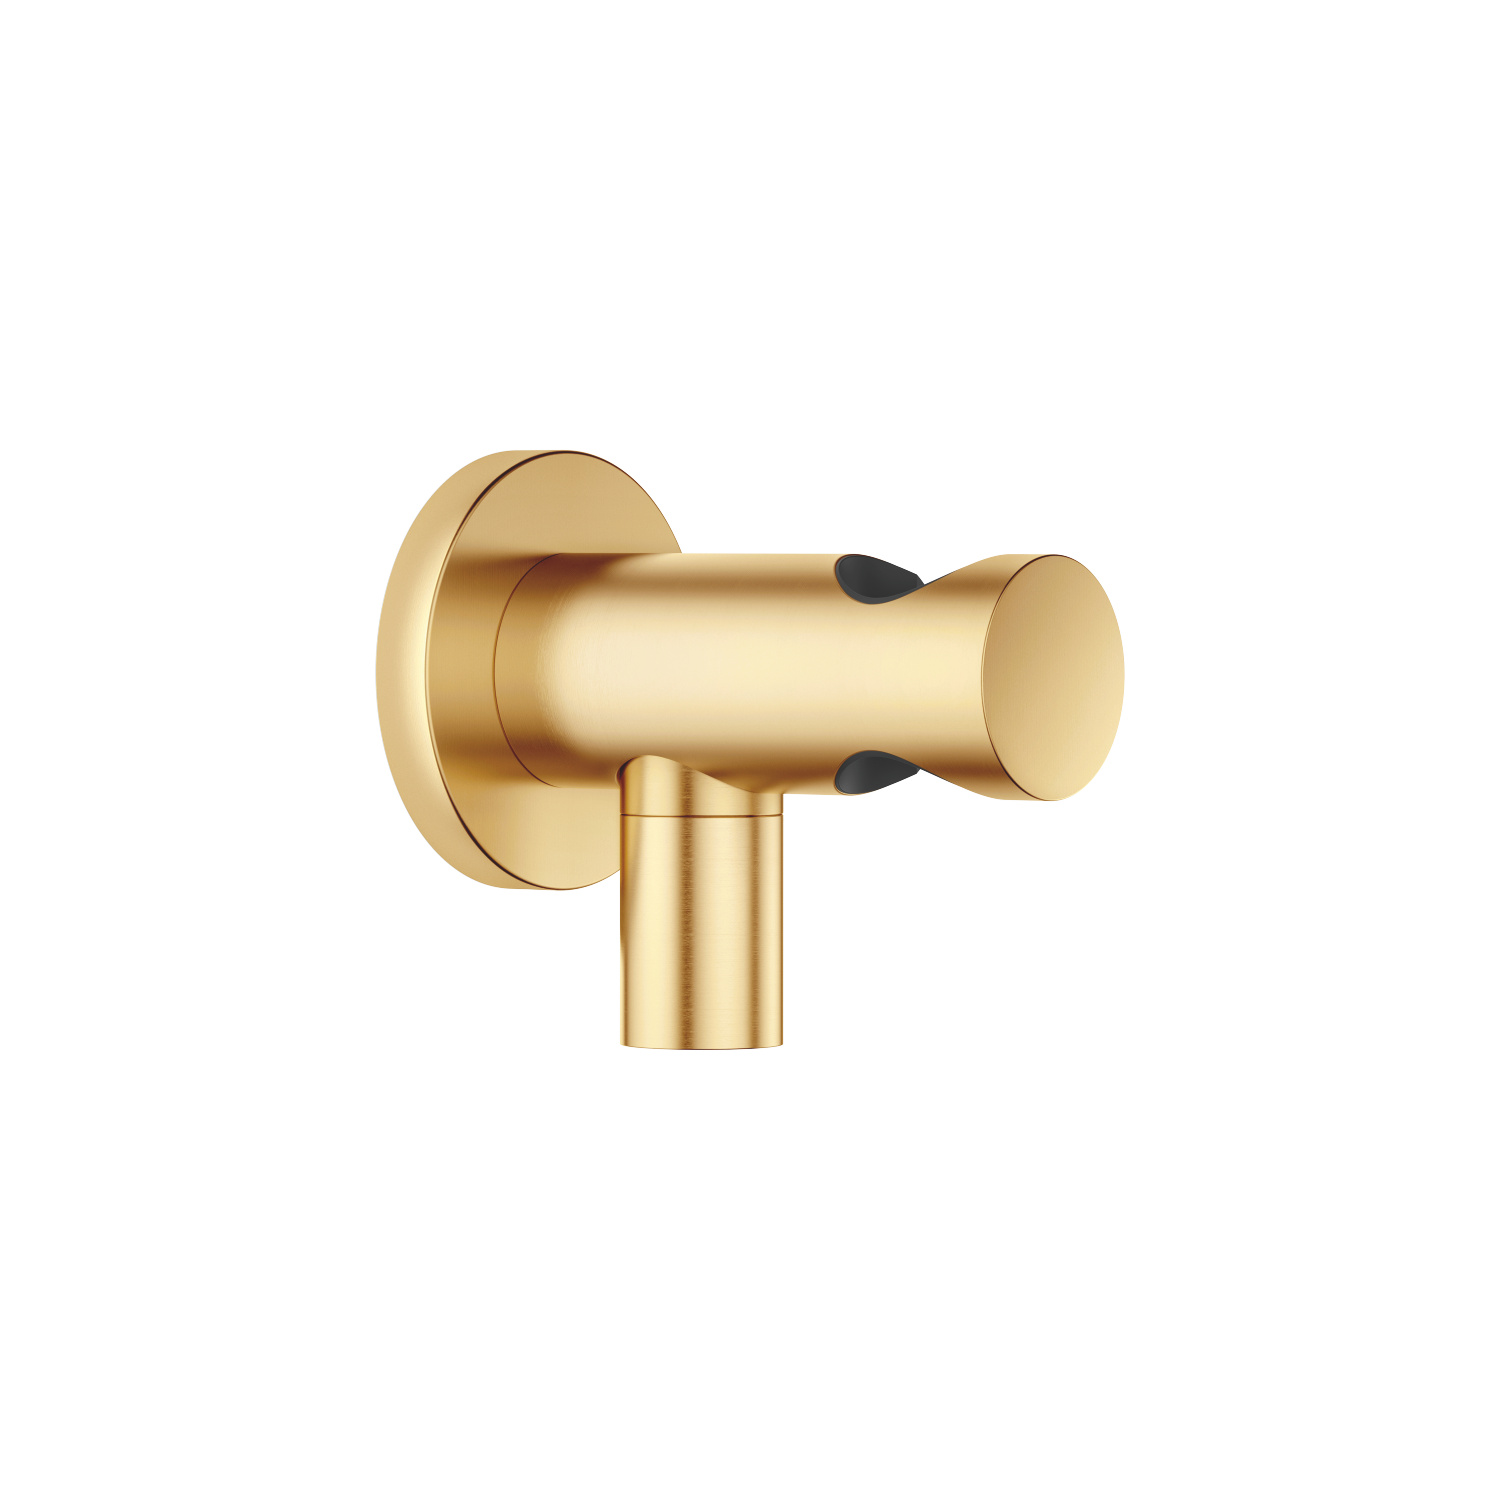 Wall elbow with integrated shower holder - brushed Durabrass